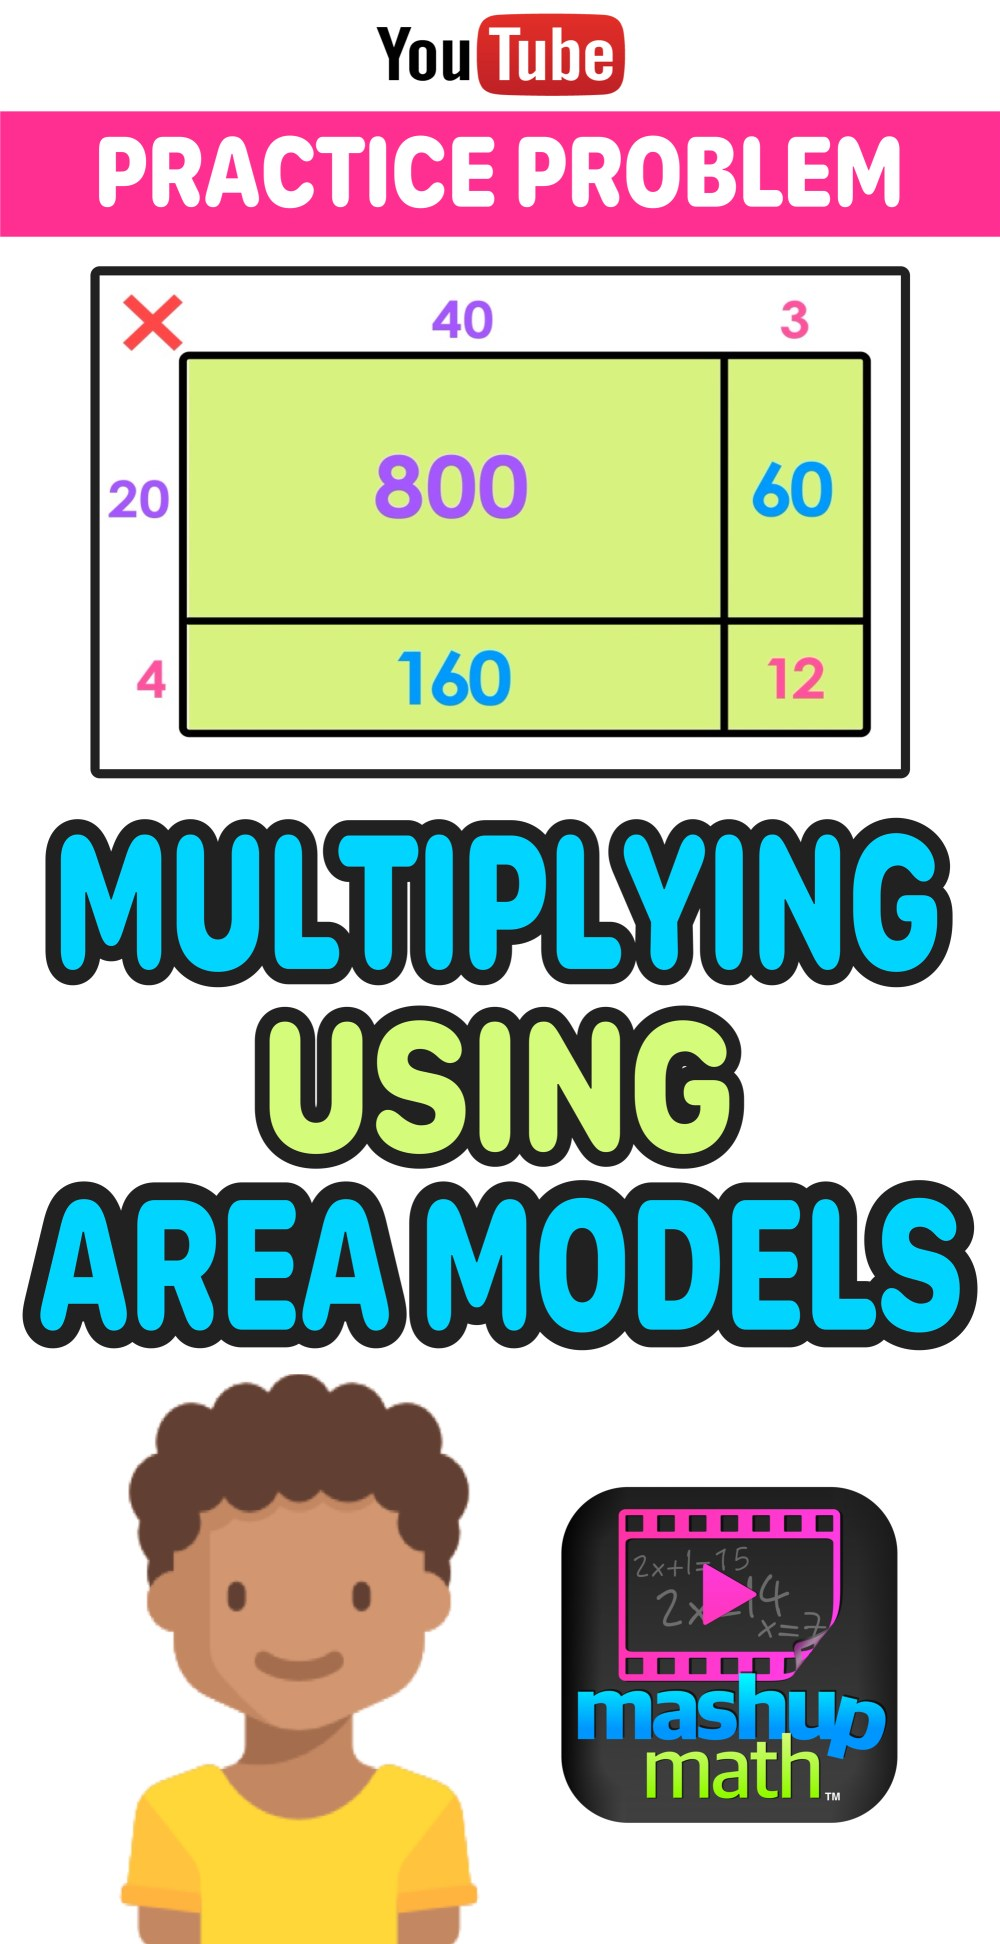 medium resolution of Teach Your Kids to Multiply Using Area Models — Mashup Math